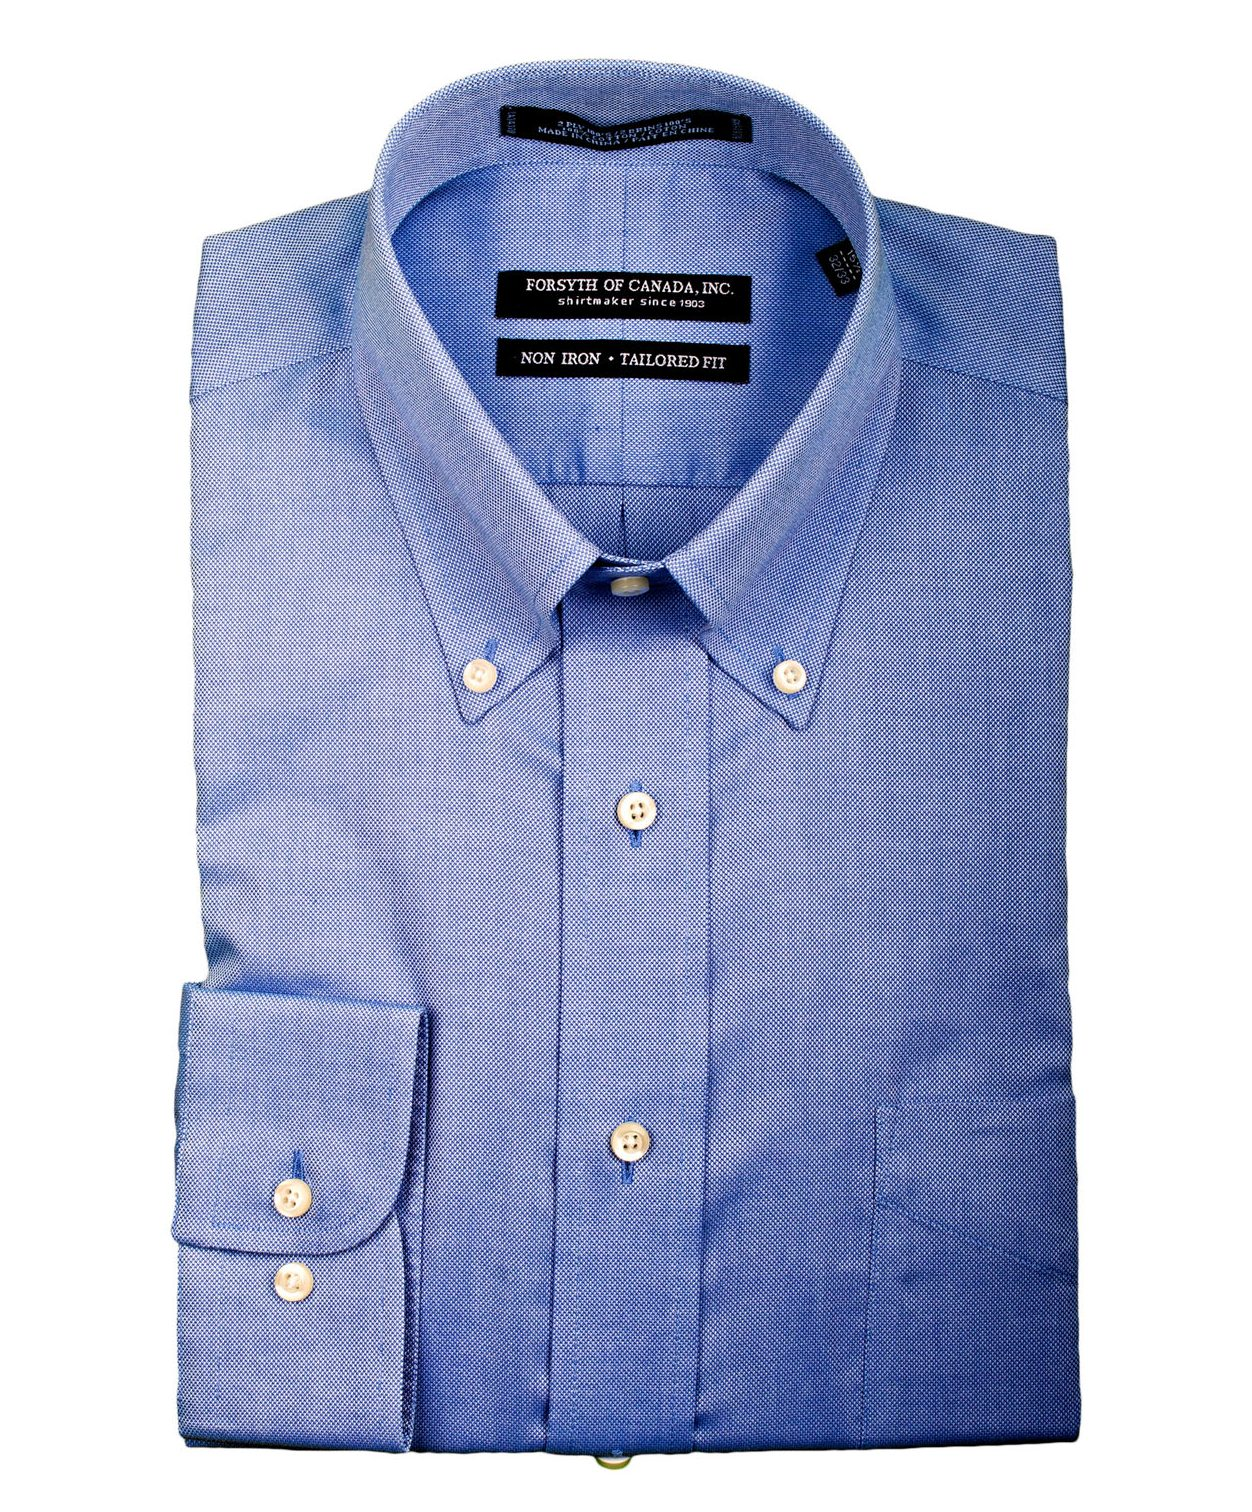 Forsyth Royal Oxford - Mens Button Down Collar (Tailored Fit)